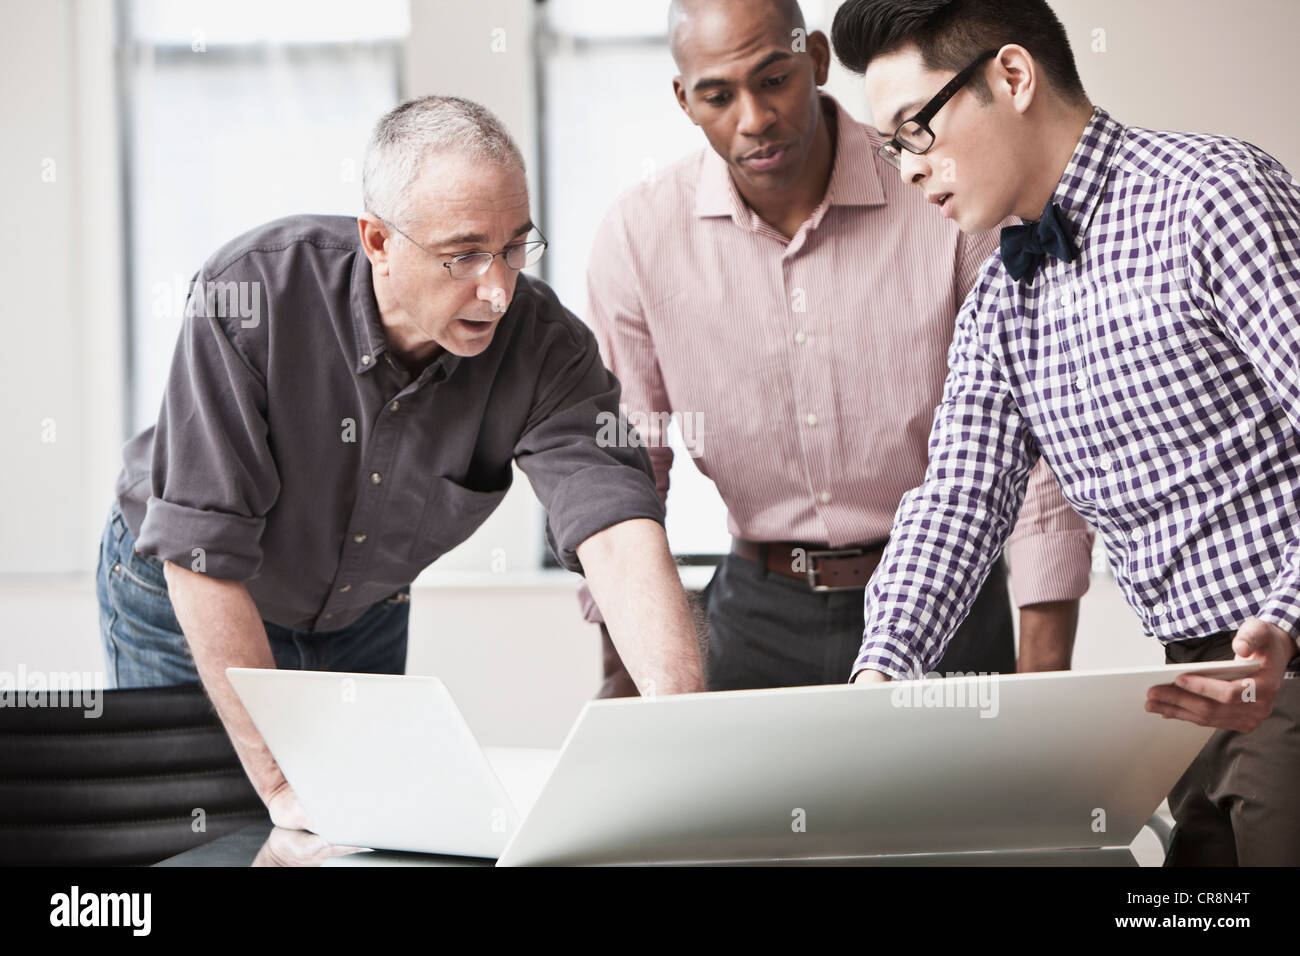 Three business people in meeting - Stock Image